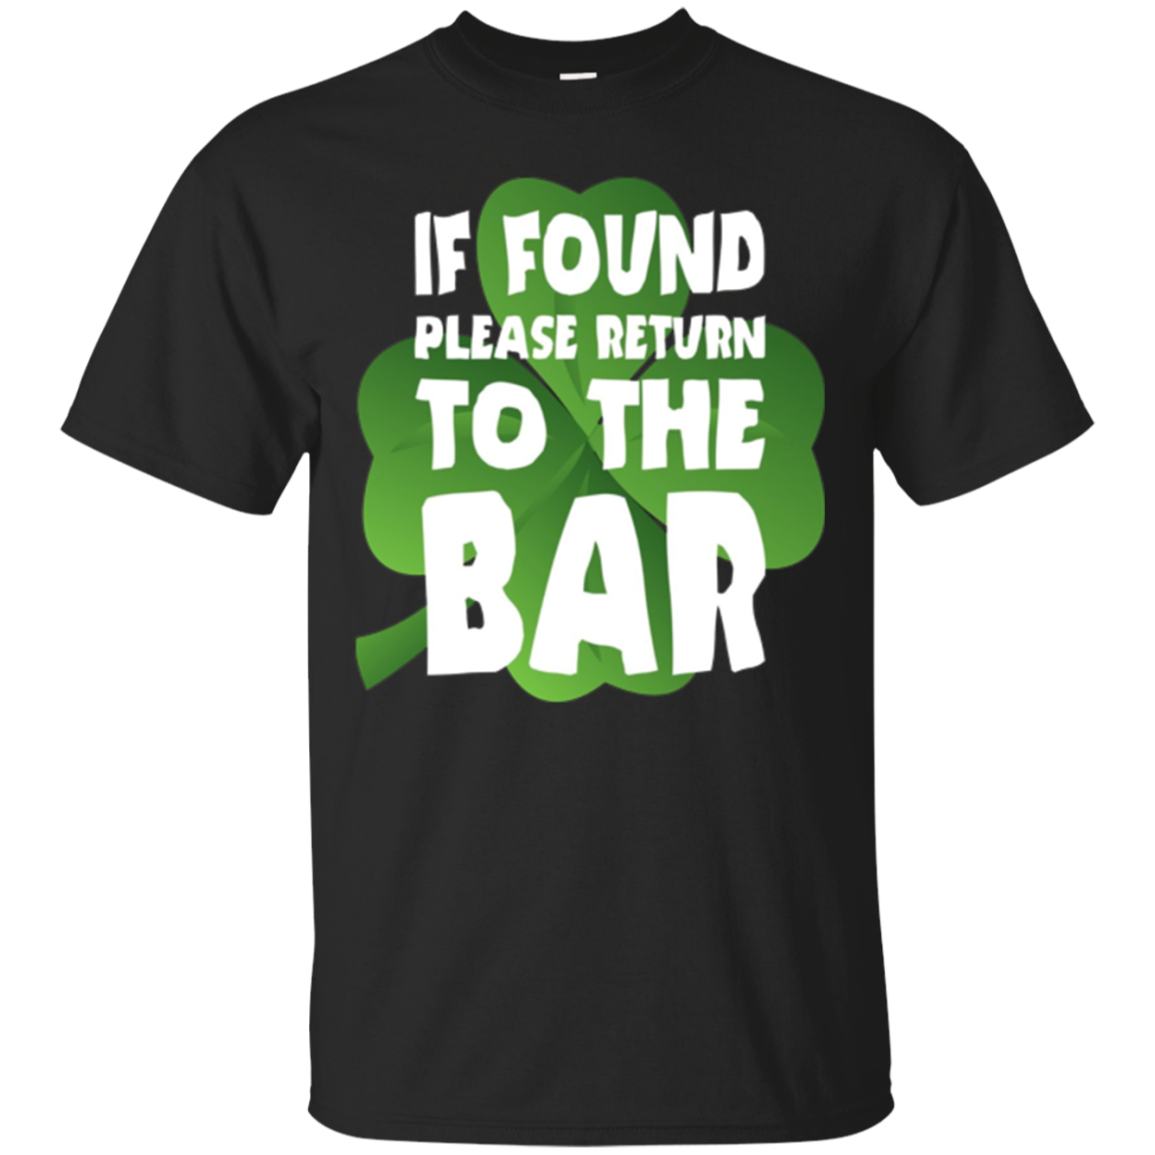 ST. PATRICK'S DAY IF FOUND FUNNY T-SHIRT, Irish, Clover Luck